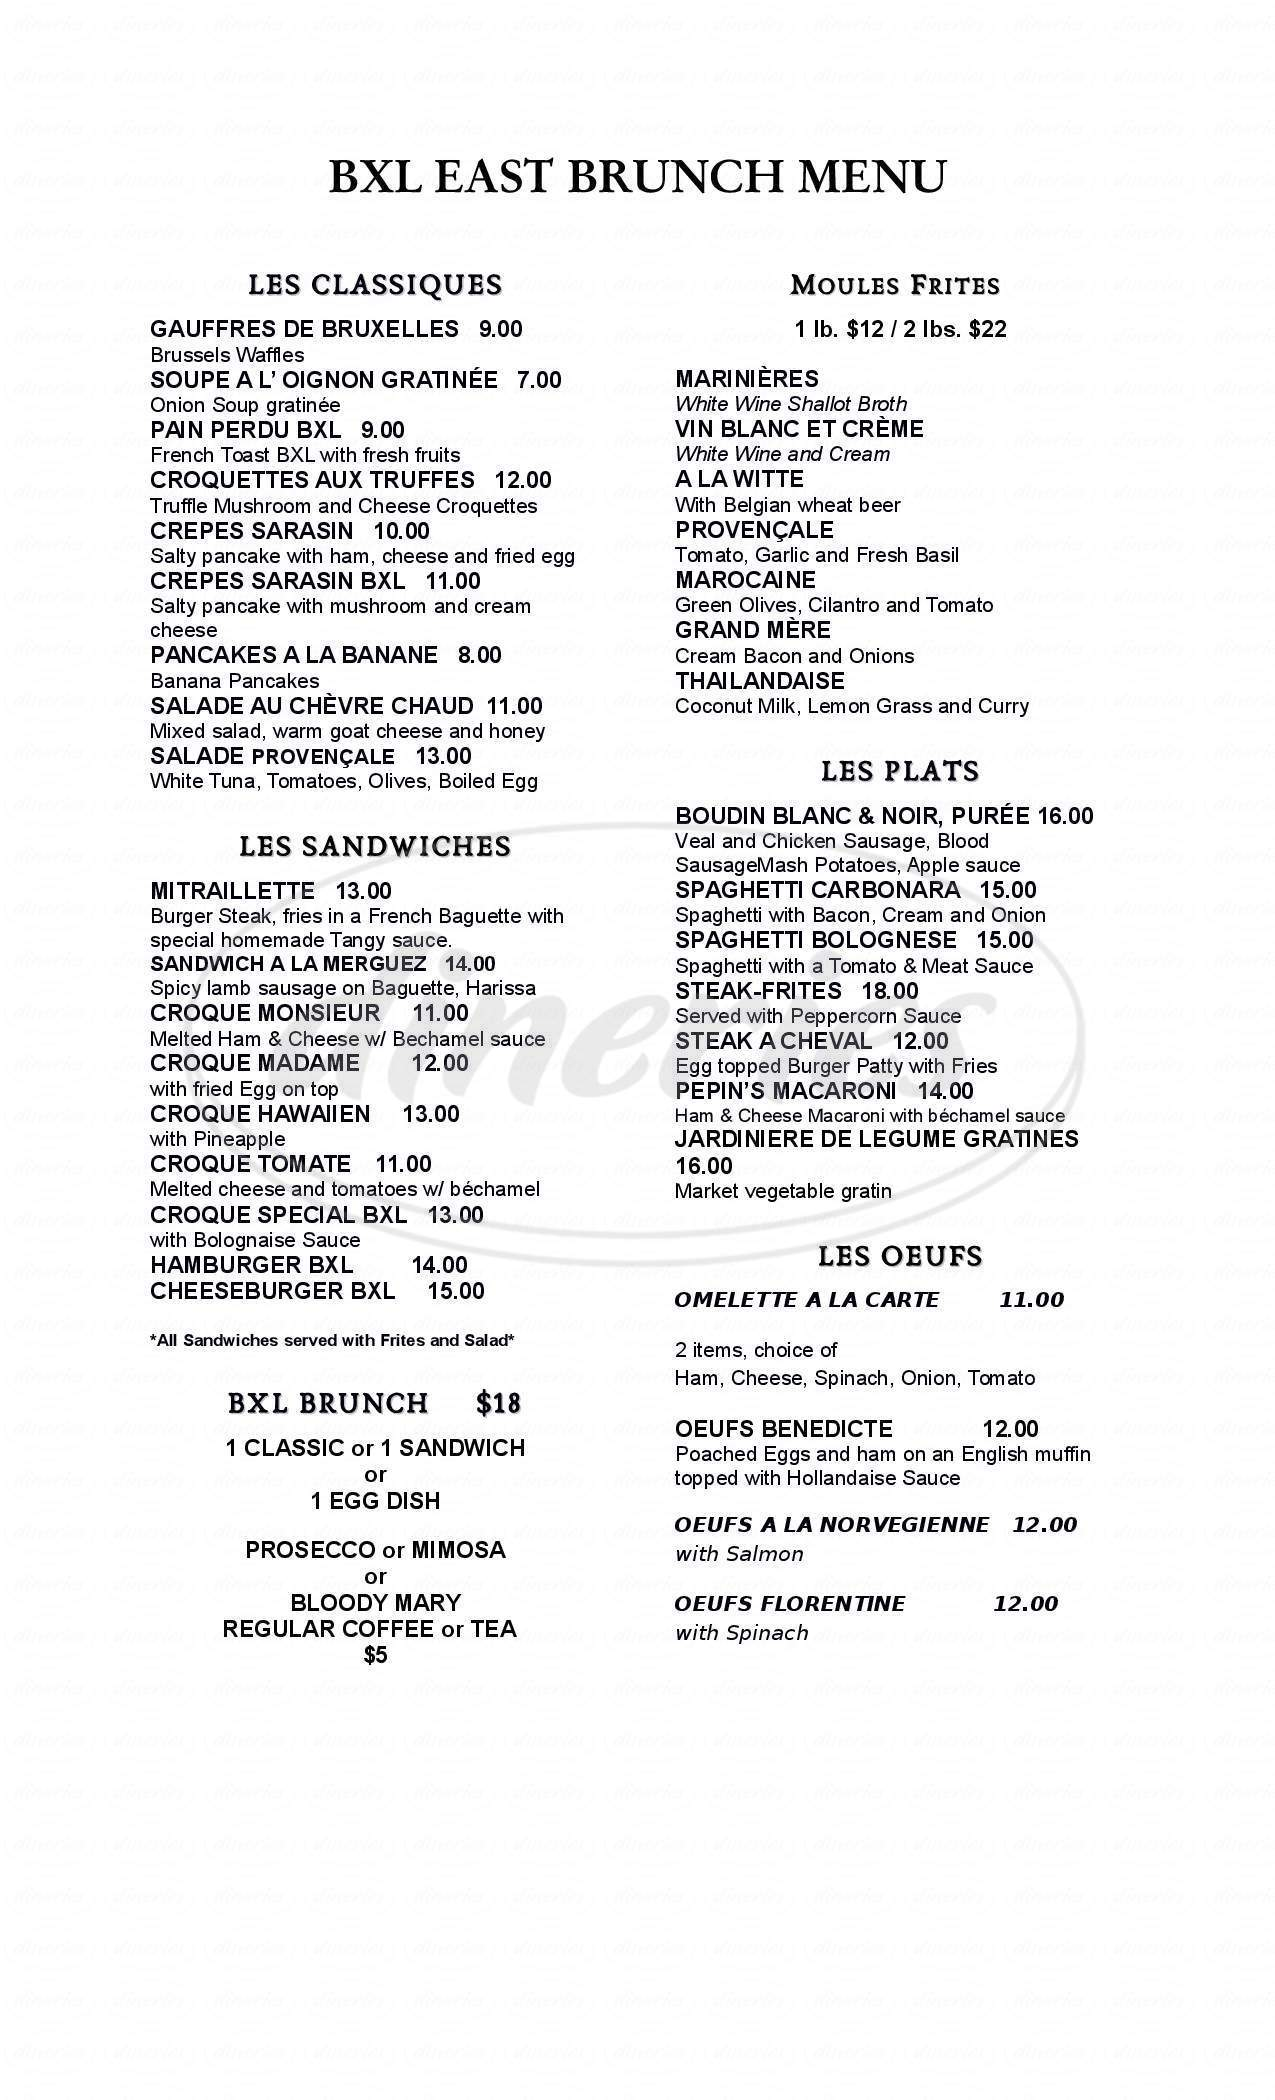 menu for BXL East